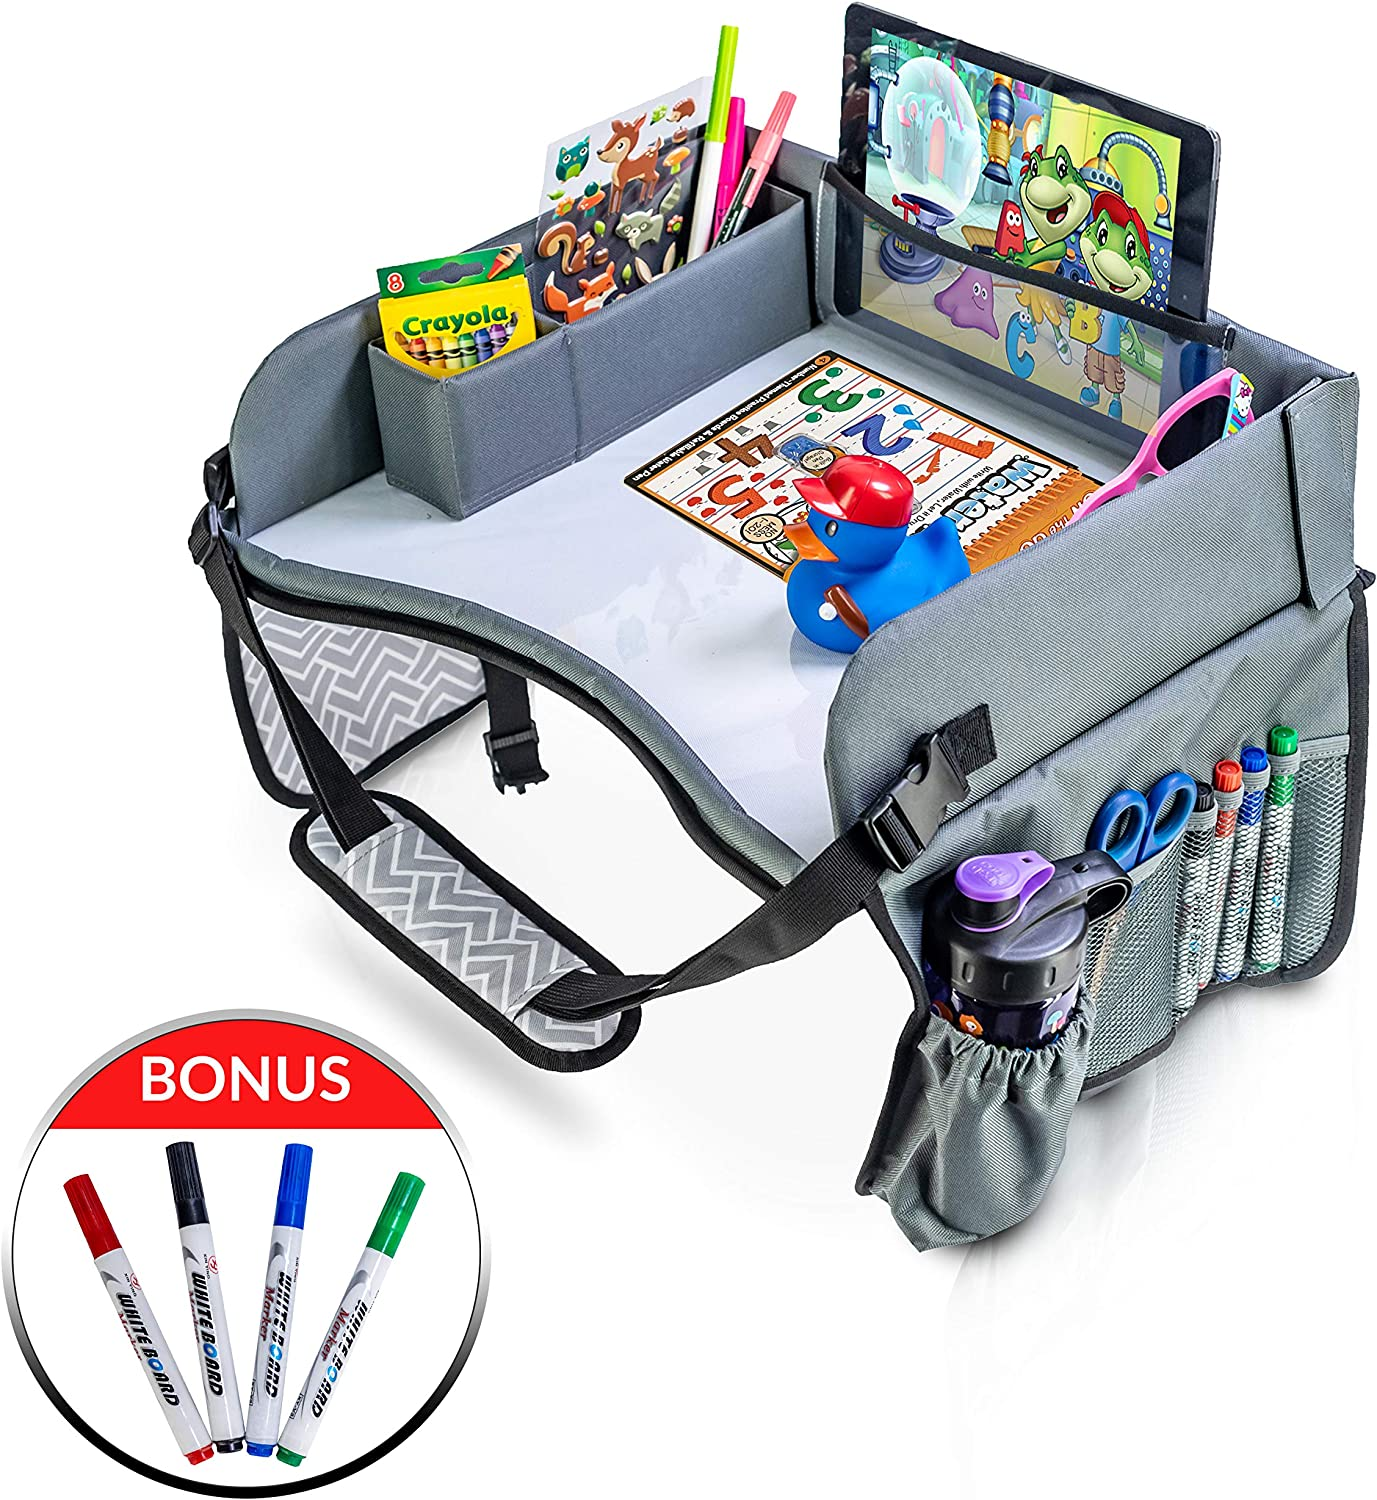 Snack Eating Tray Activity Storage Lap Desk for Kids Portable Car Seat Tray Dry Erase Tray with Markers iPad//Tablet Holder Foldable MyLapDesks Kids Travel Tray